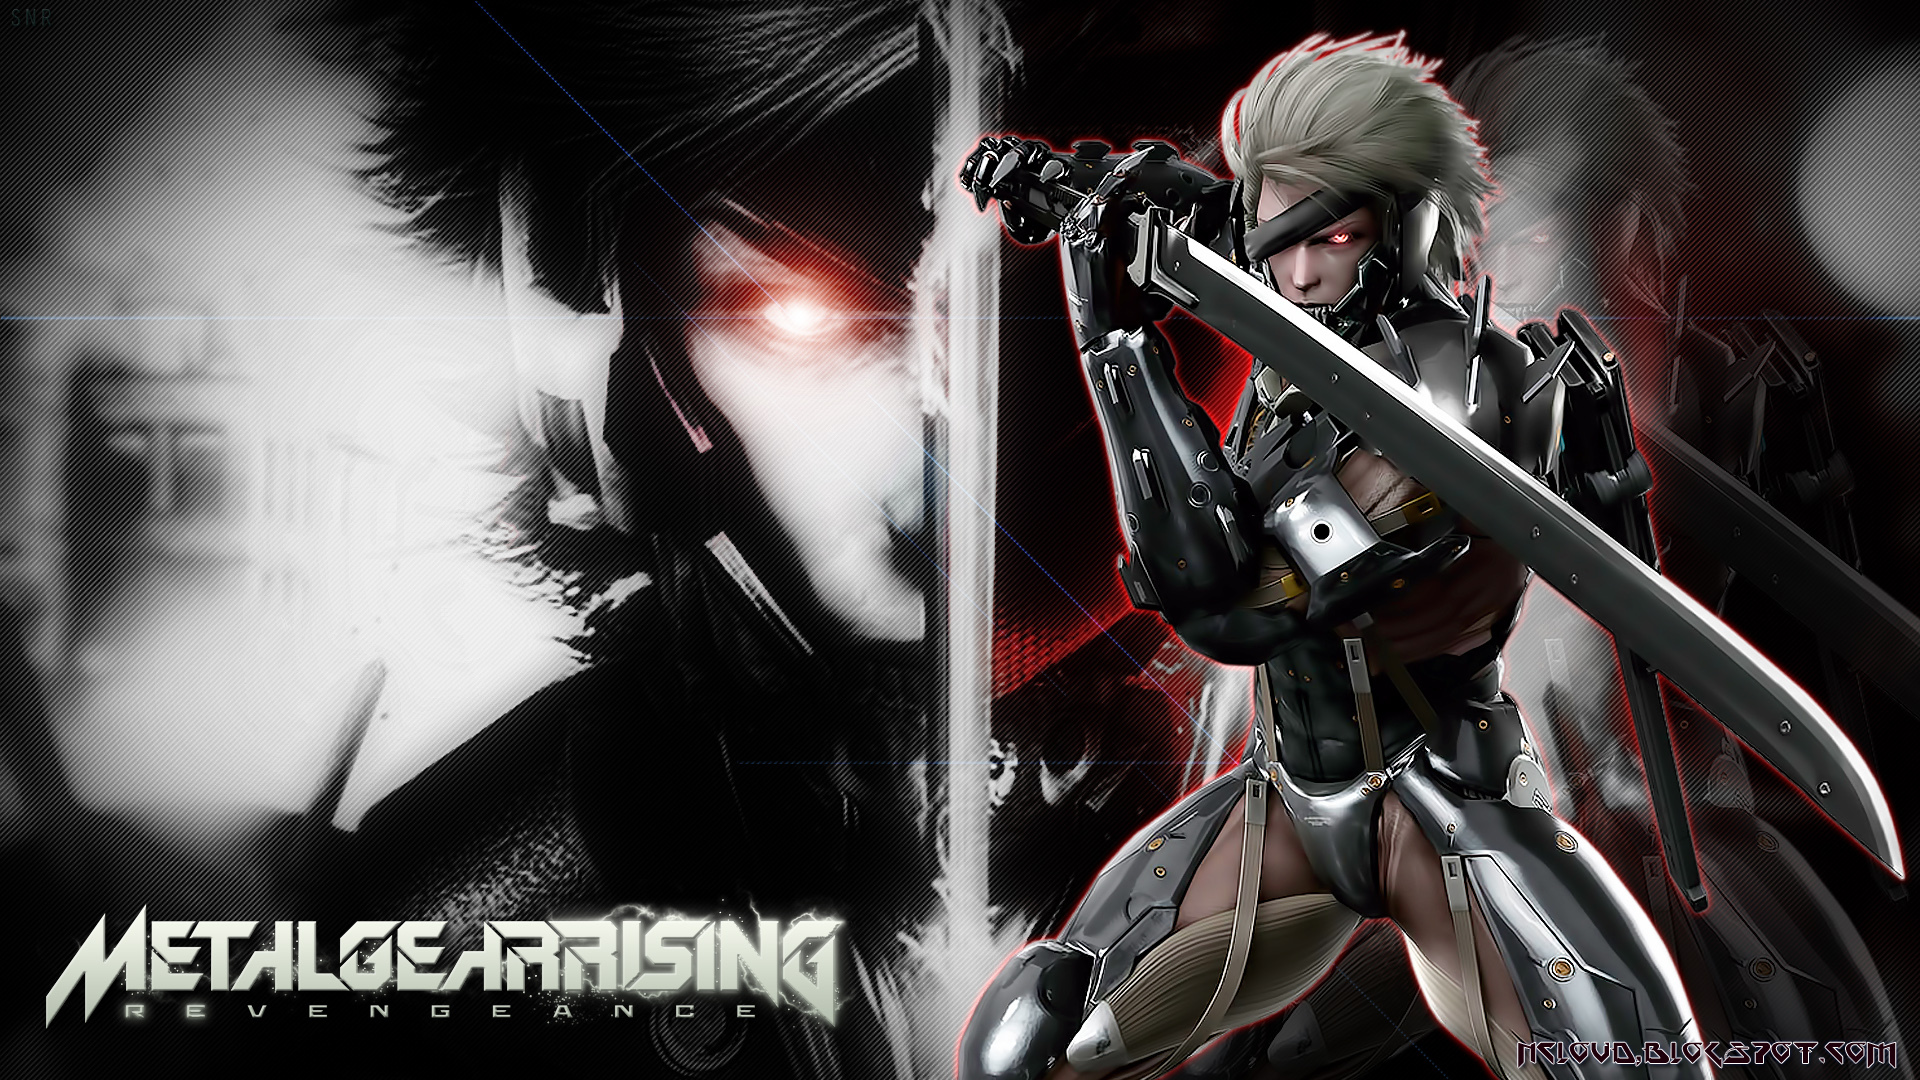 Anime metal music my metal gear rising wallpaper